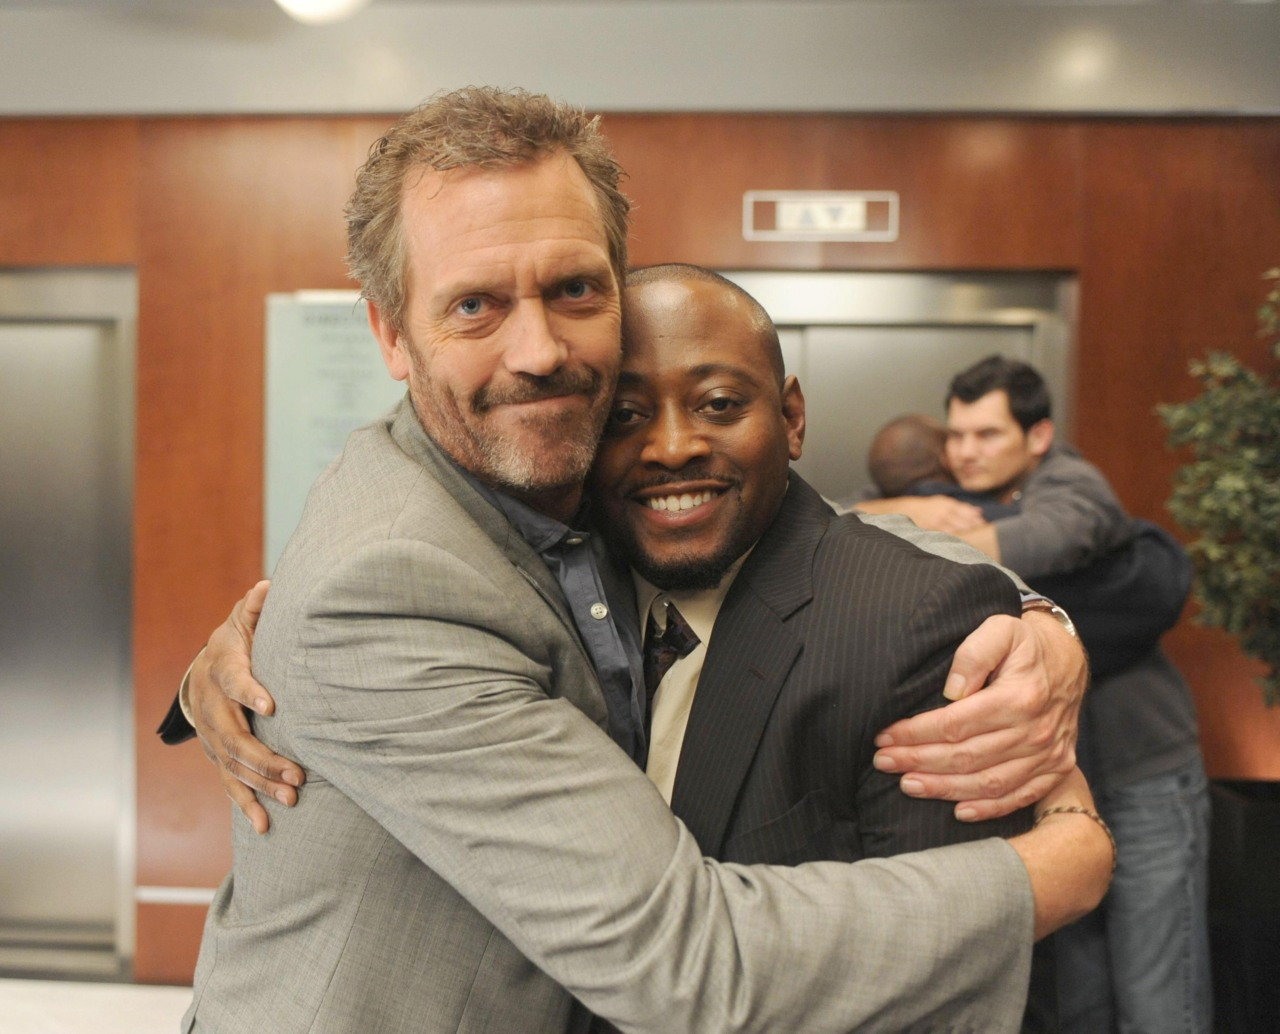 House m d swan song retro special bts pictures house for House md music